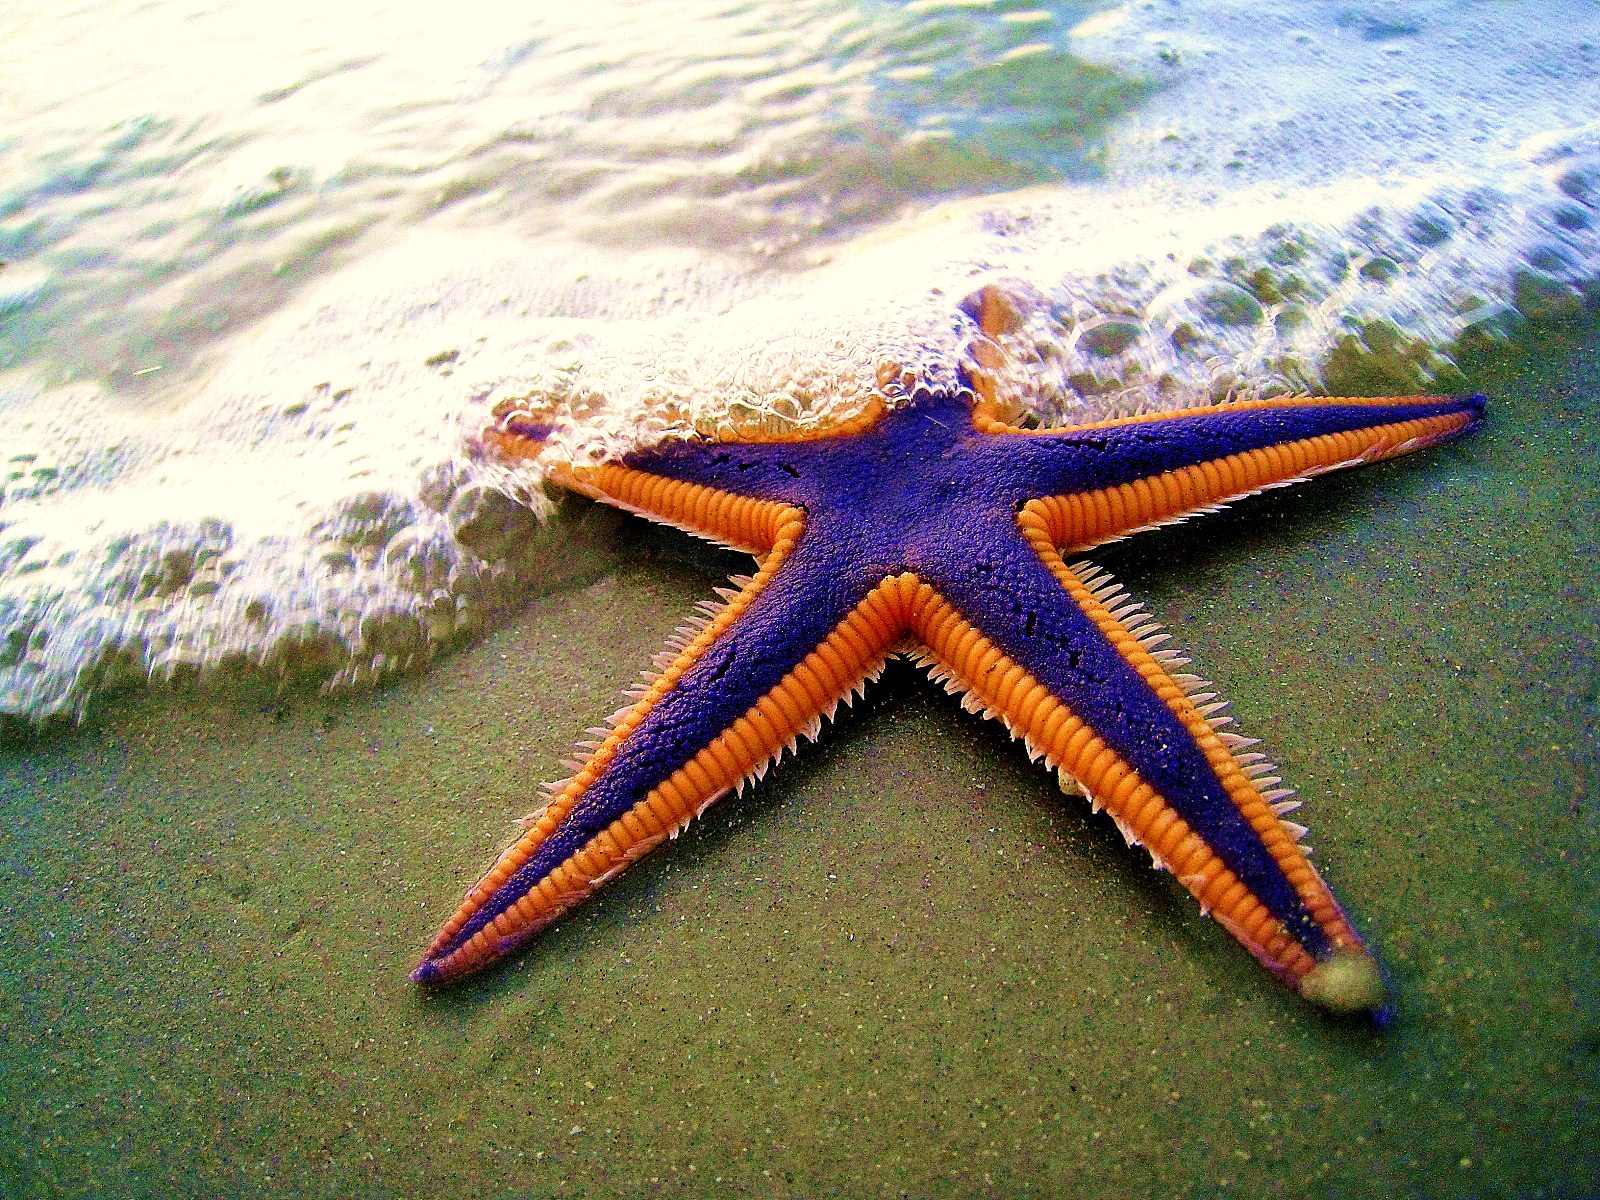 file royal starfish astropecten articulatus on the beach